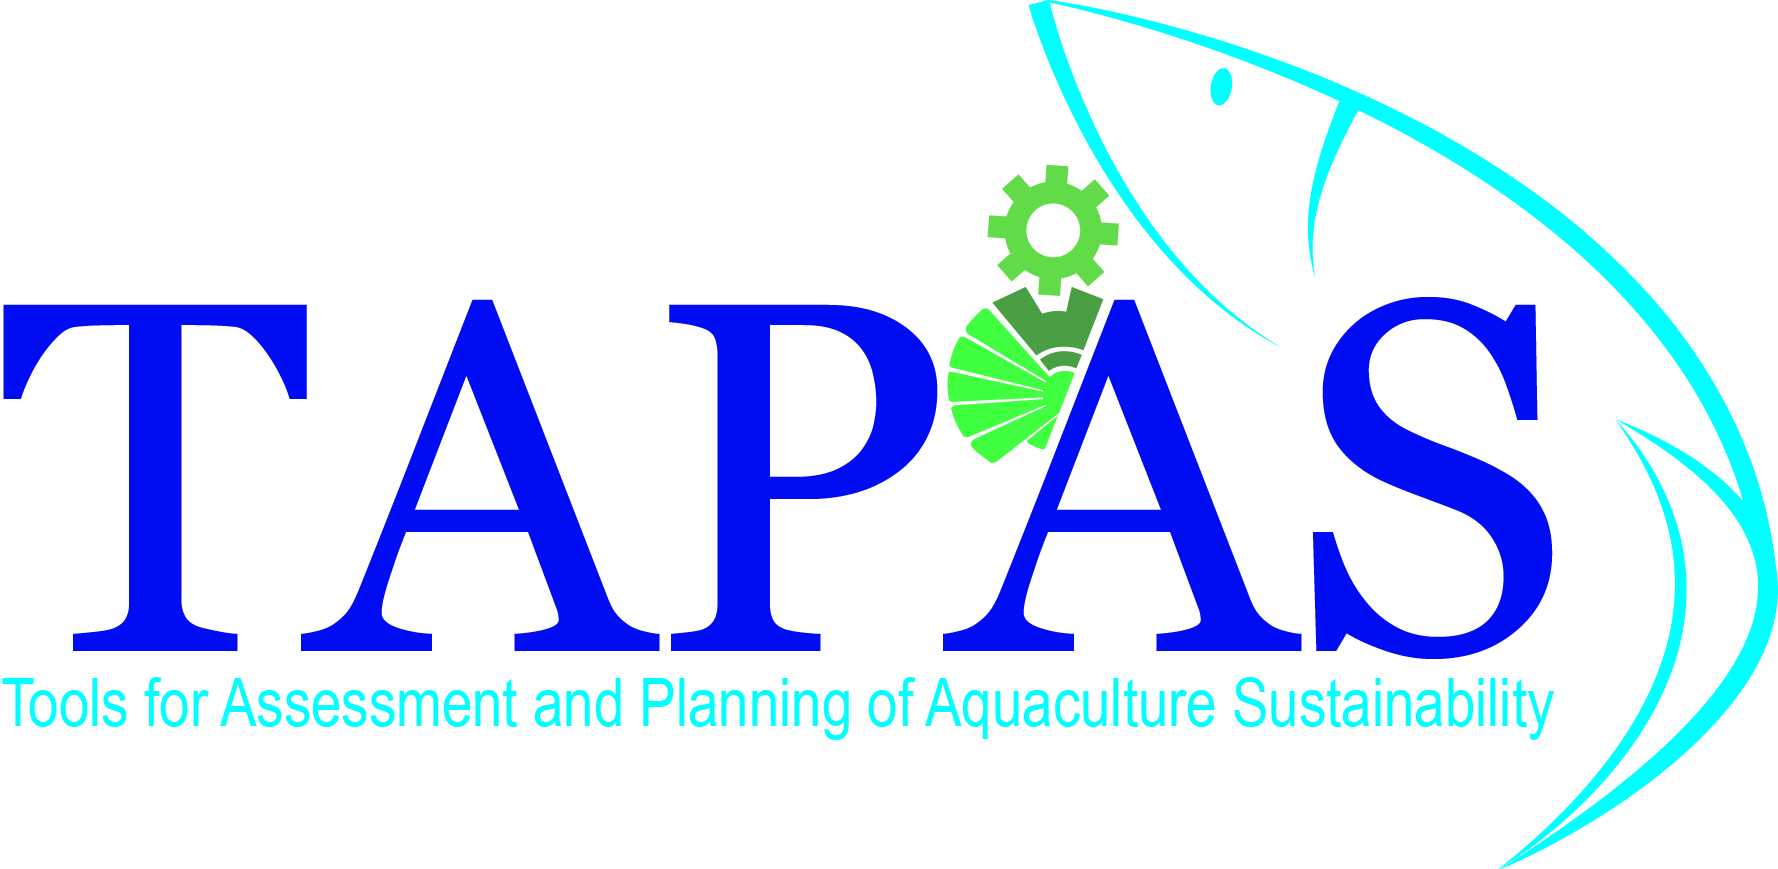 TAPAS - Tools for Assessment and Planning of Aquaculture